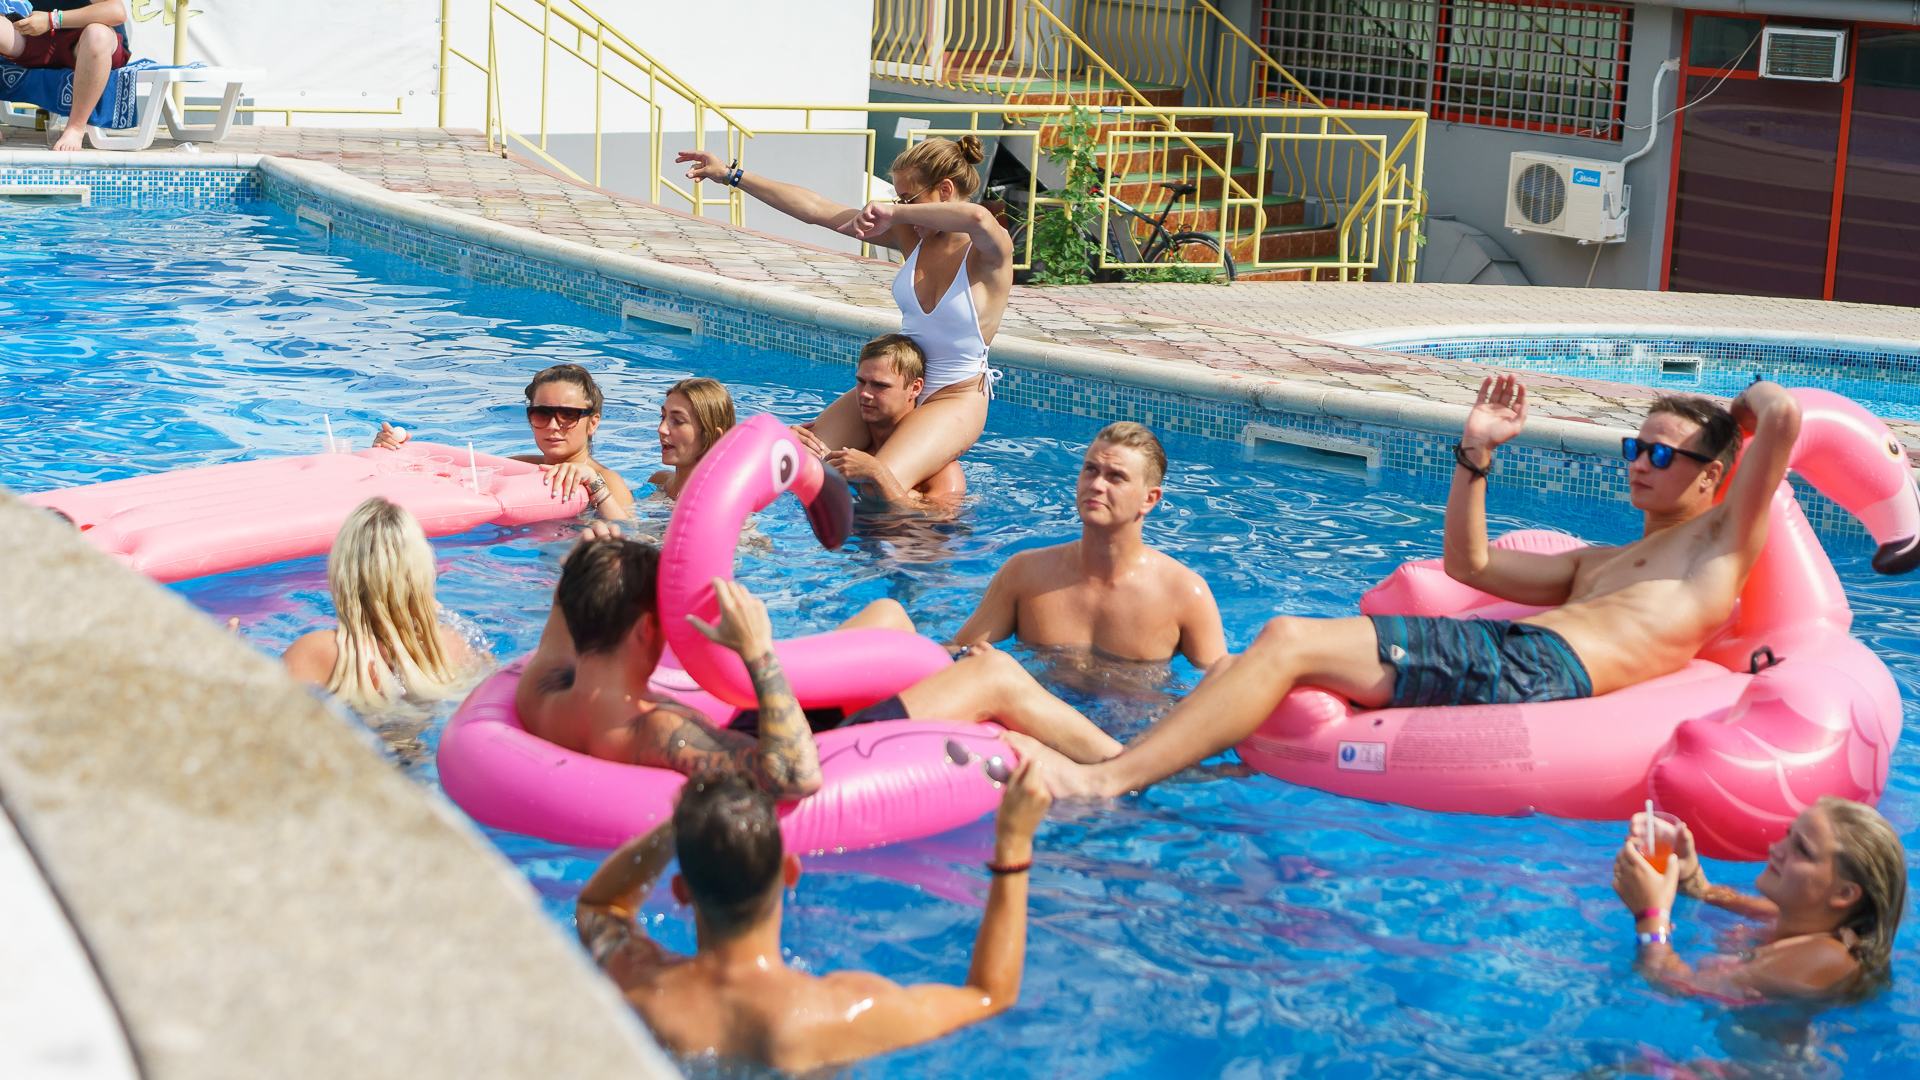 Poolparty I Golden Sands